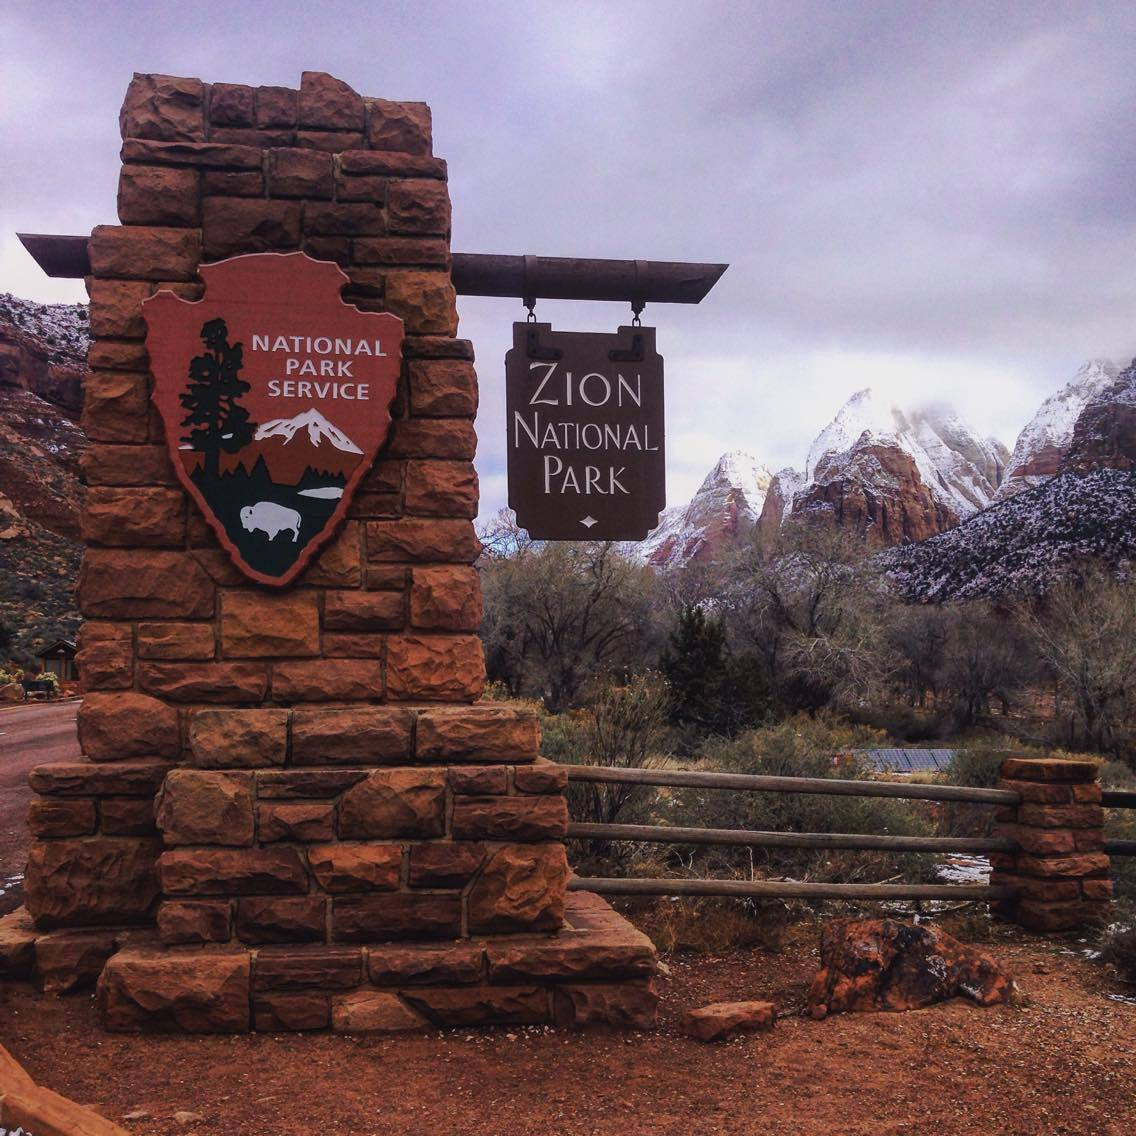 Zion National Park, Washington County, Utah, Jan. 7-8, 2016 | Photo courtesy of Melissa Gifford Lewis, St. George News